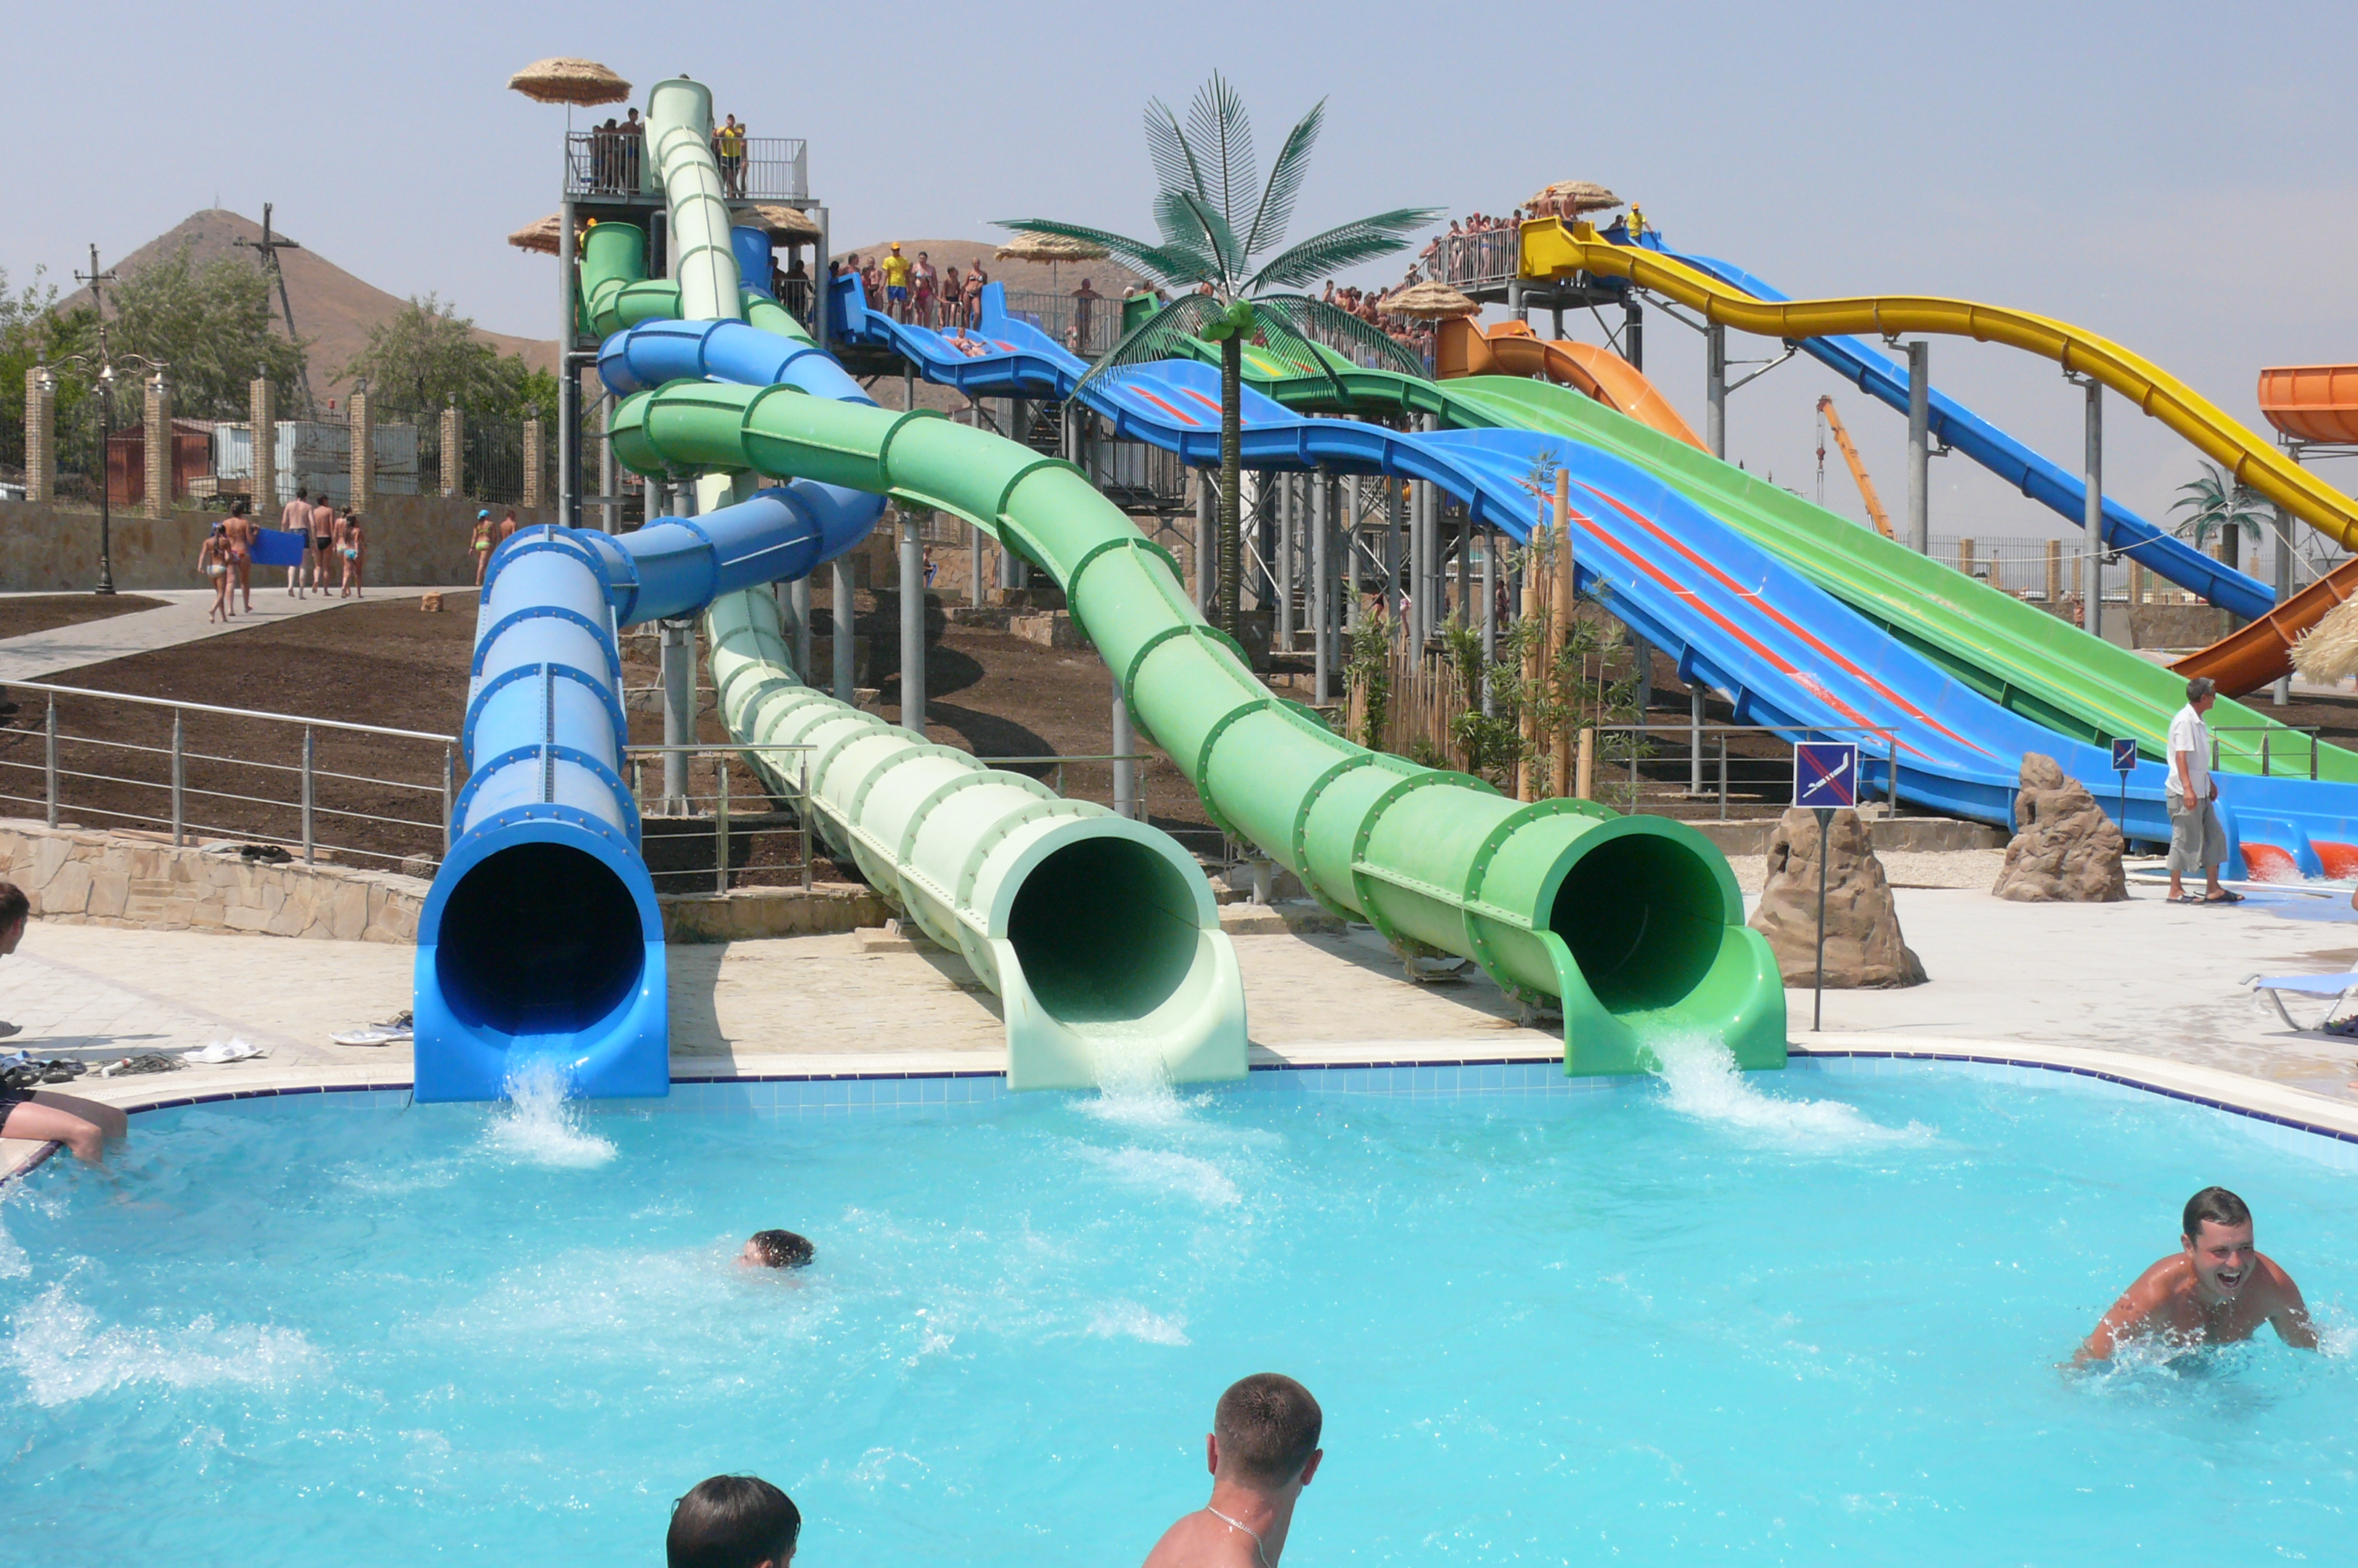 https://aquapark-koktebel.ru/wp-content/uploads/2020/03/Tvister.jpg